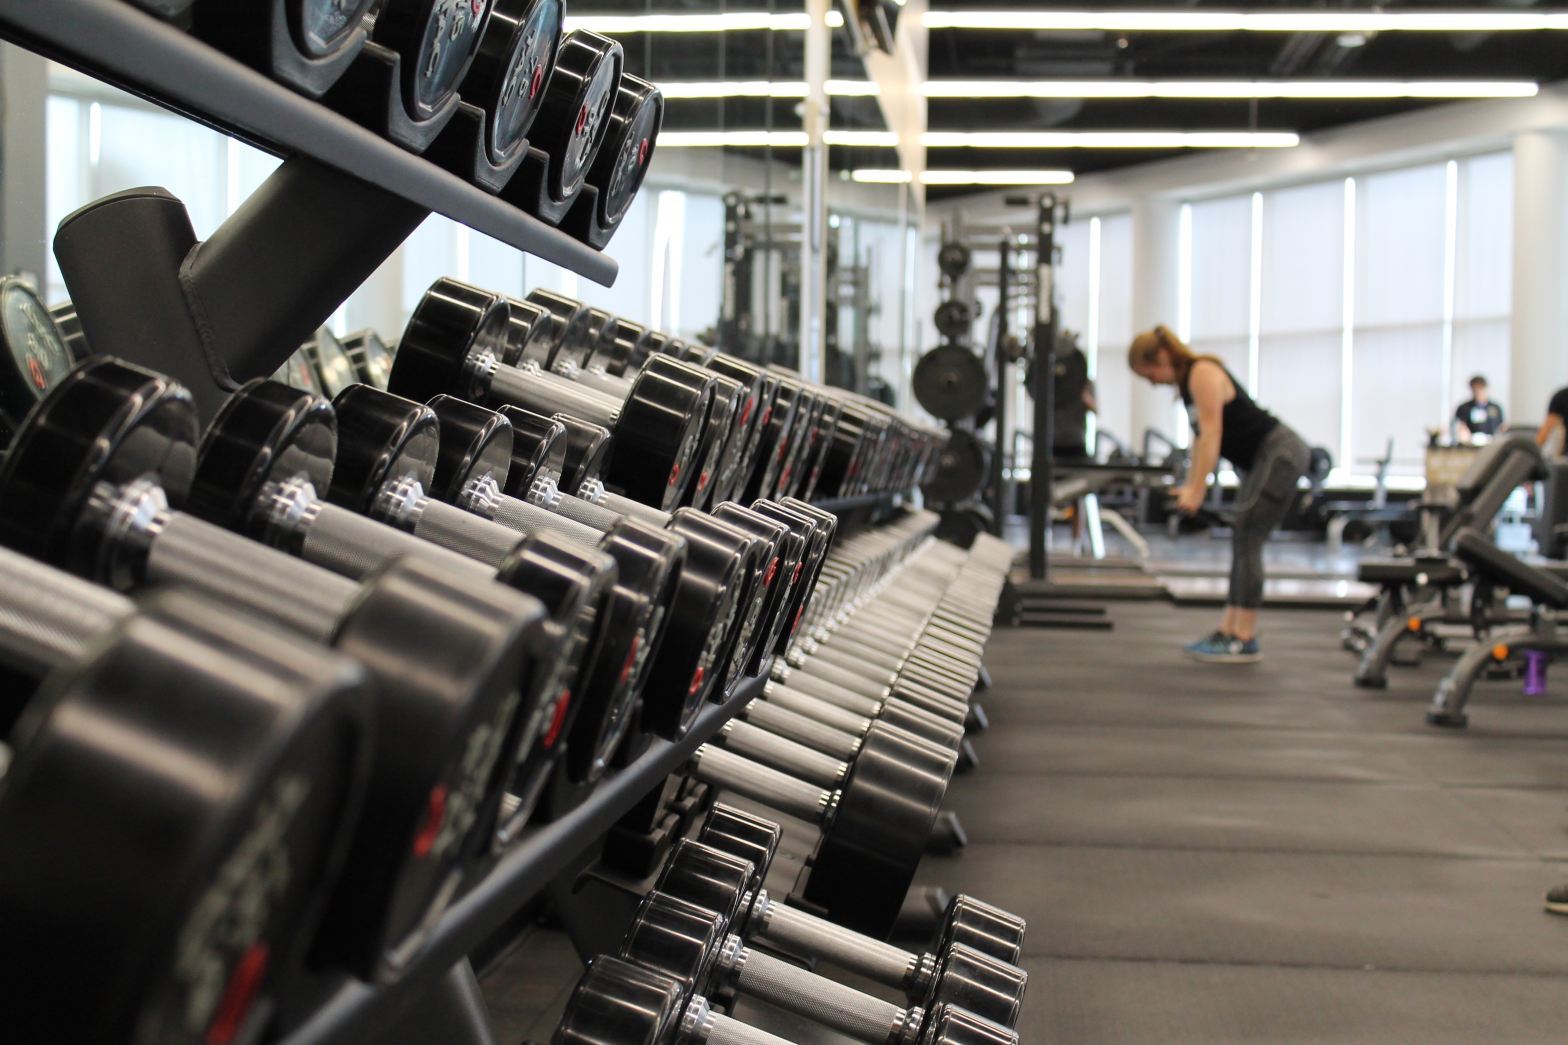 row of free weights with a woman at the end of the row